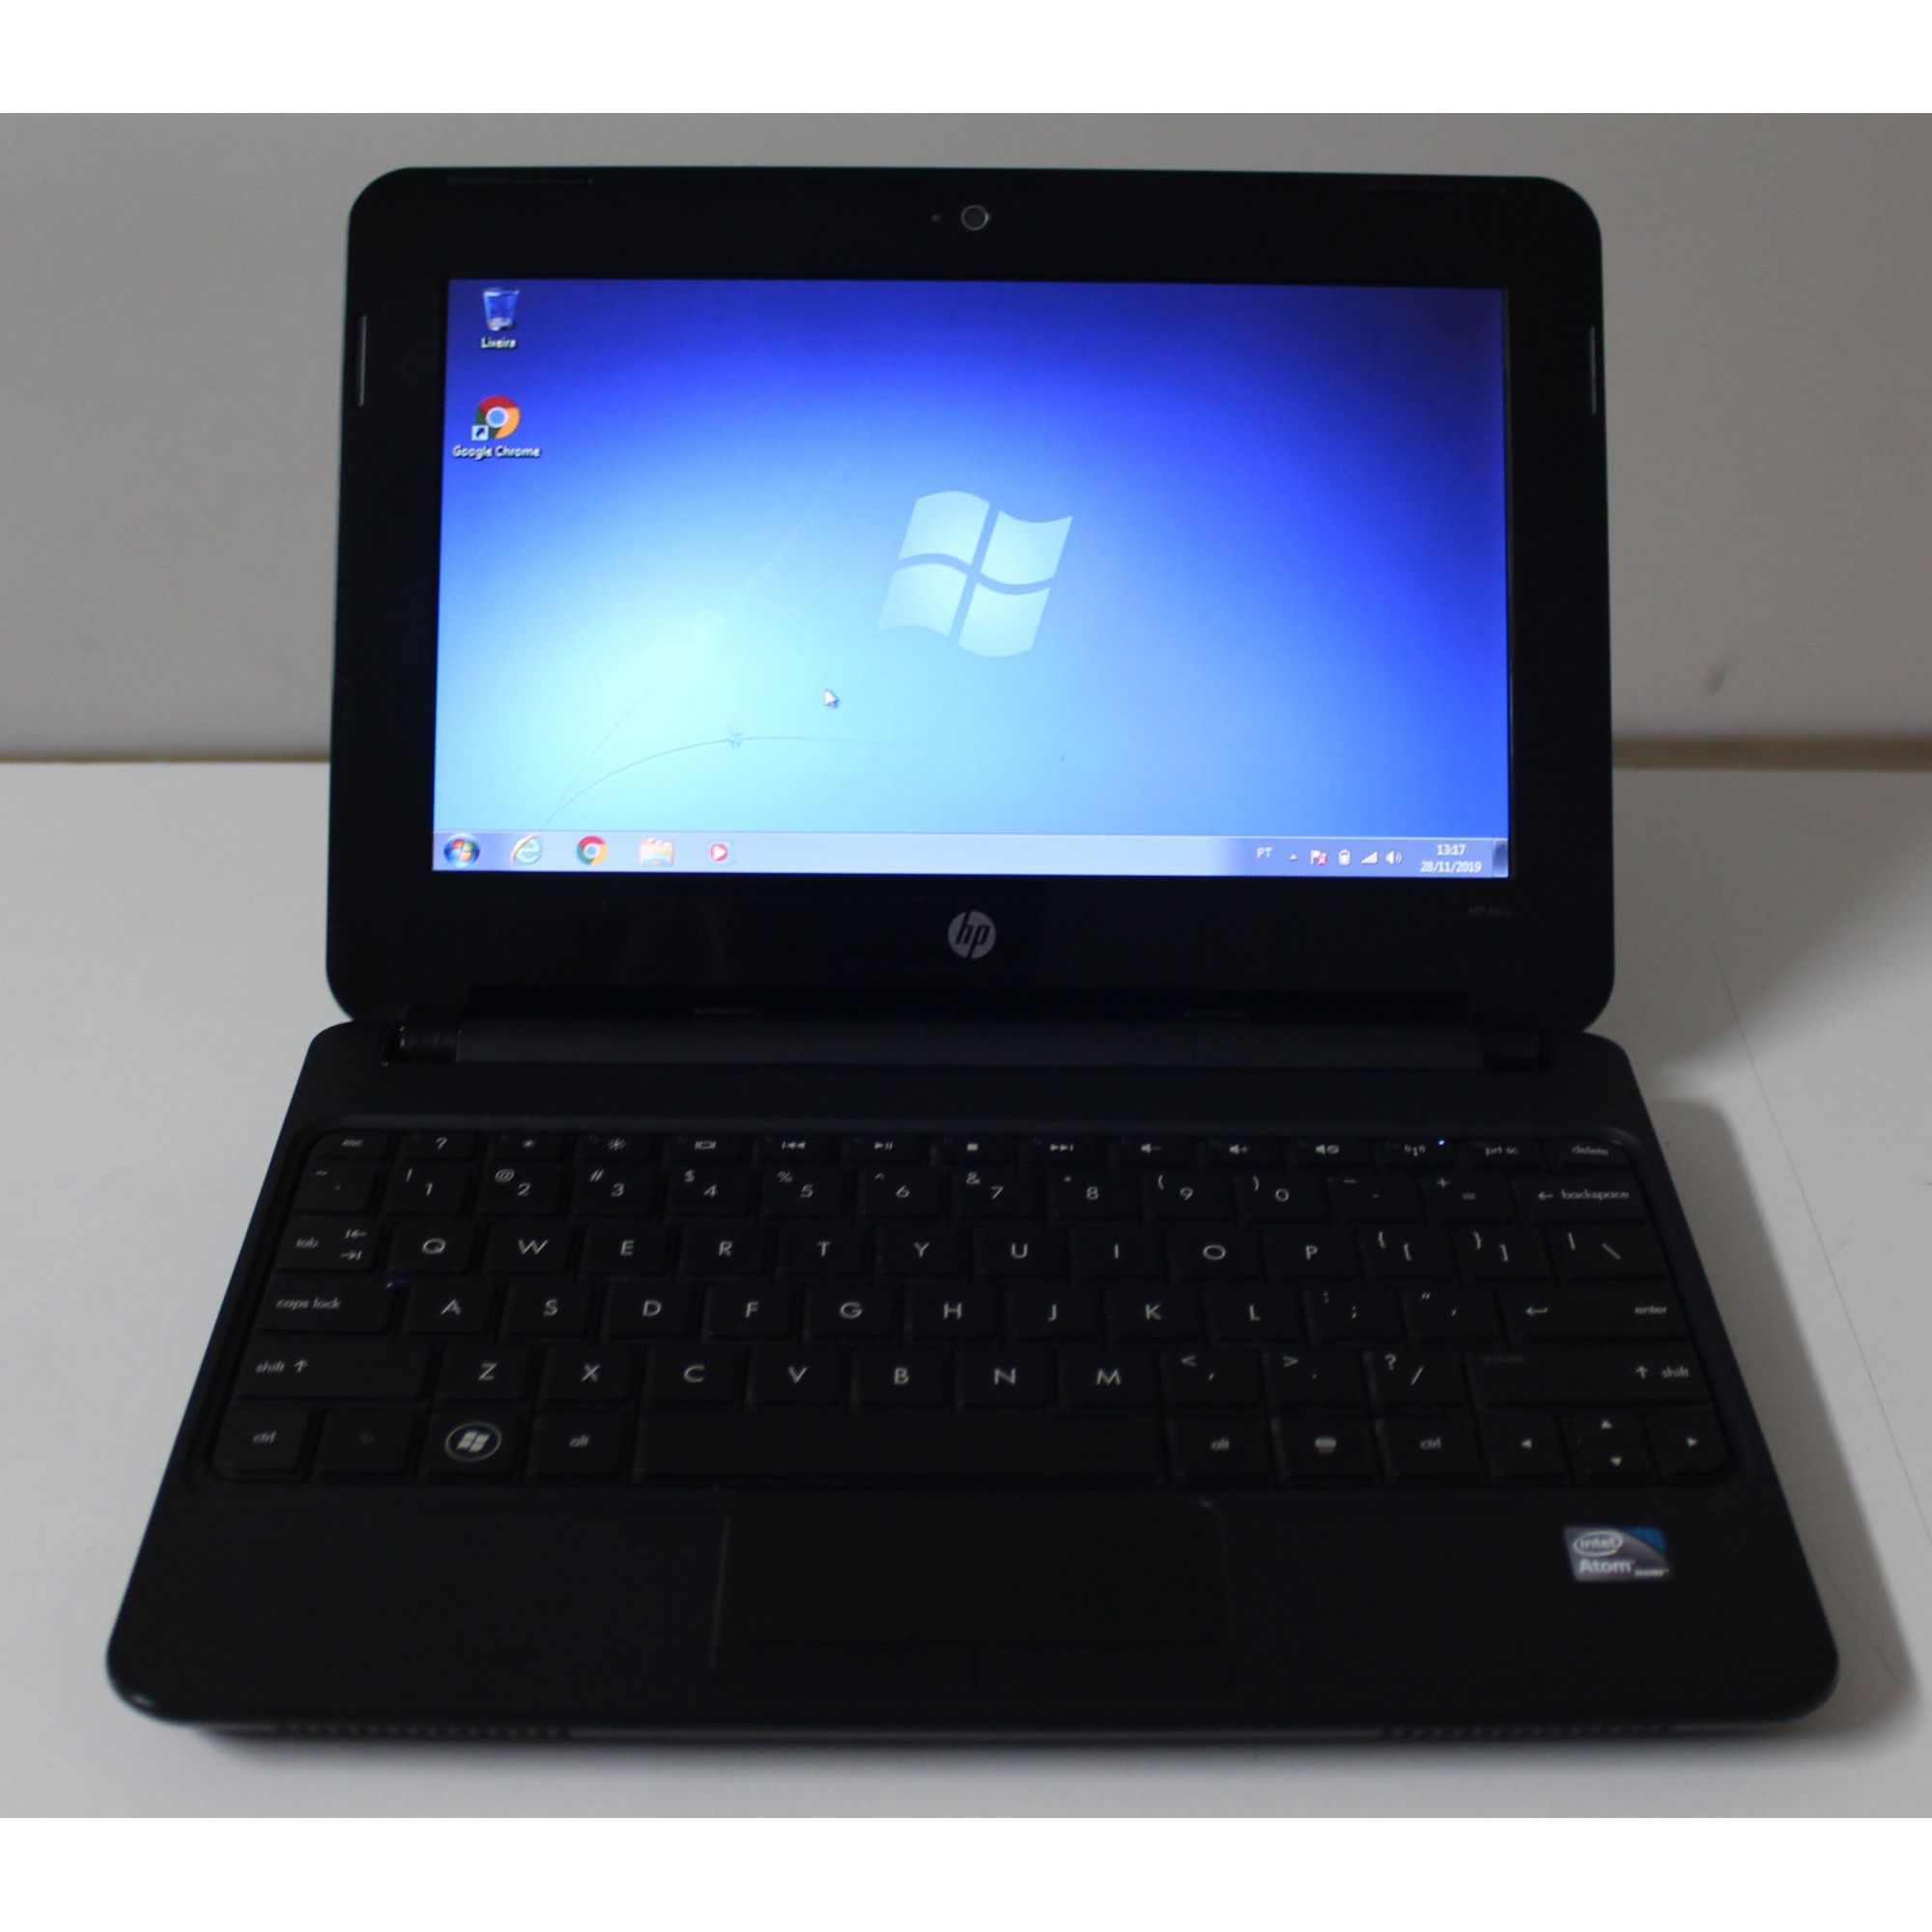 "Netbook HP Mini 110 10.1"" Intel Atom 1.66GHz 2GB HD-250GB"